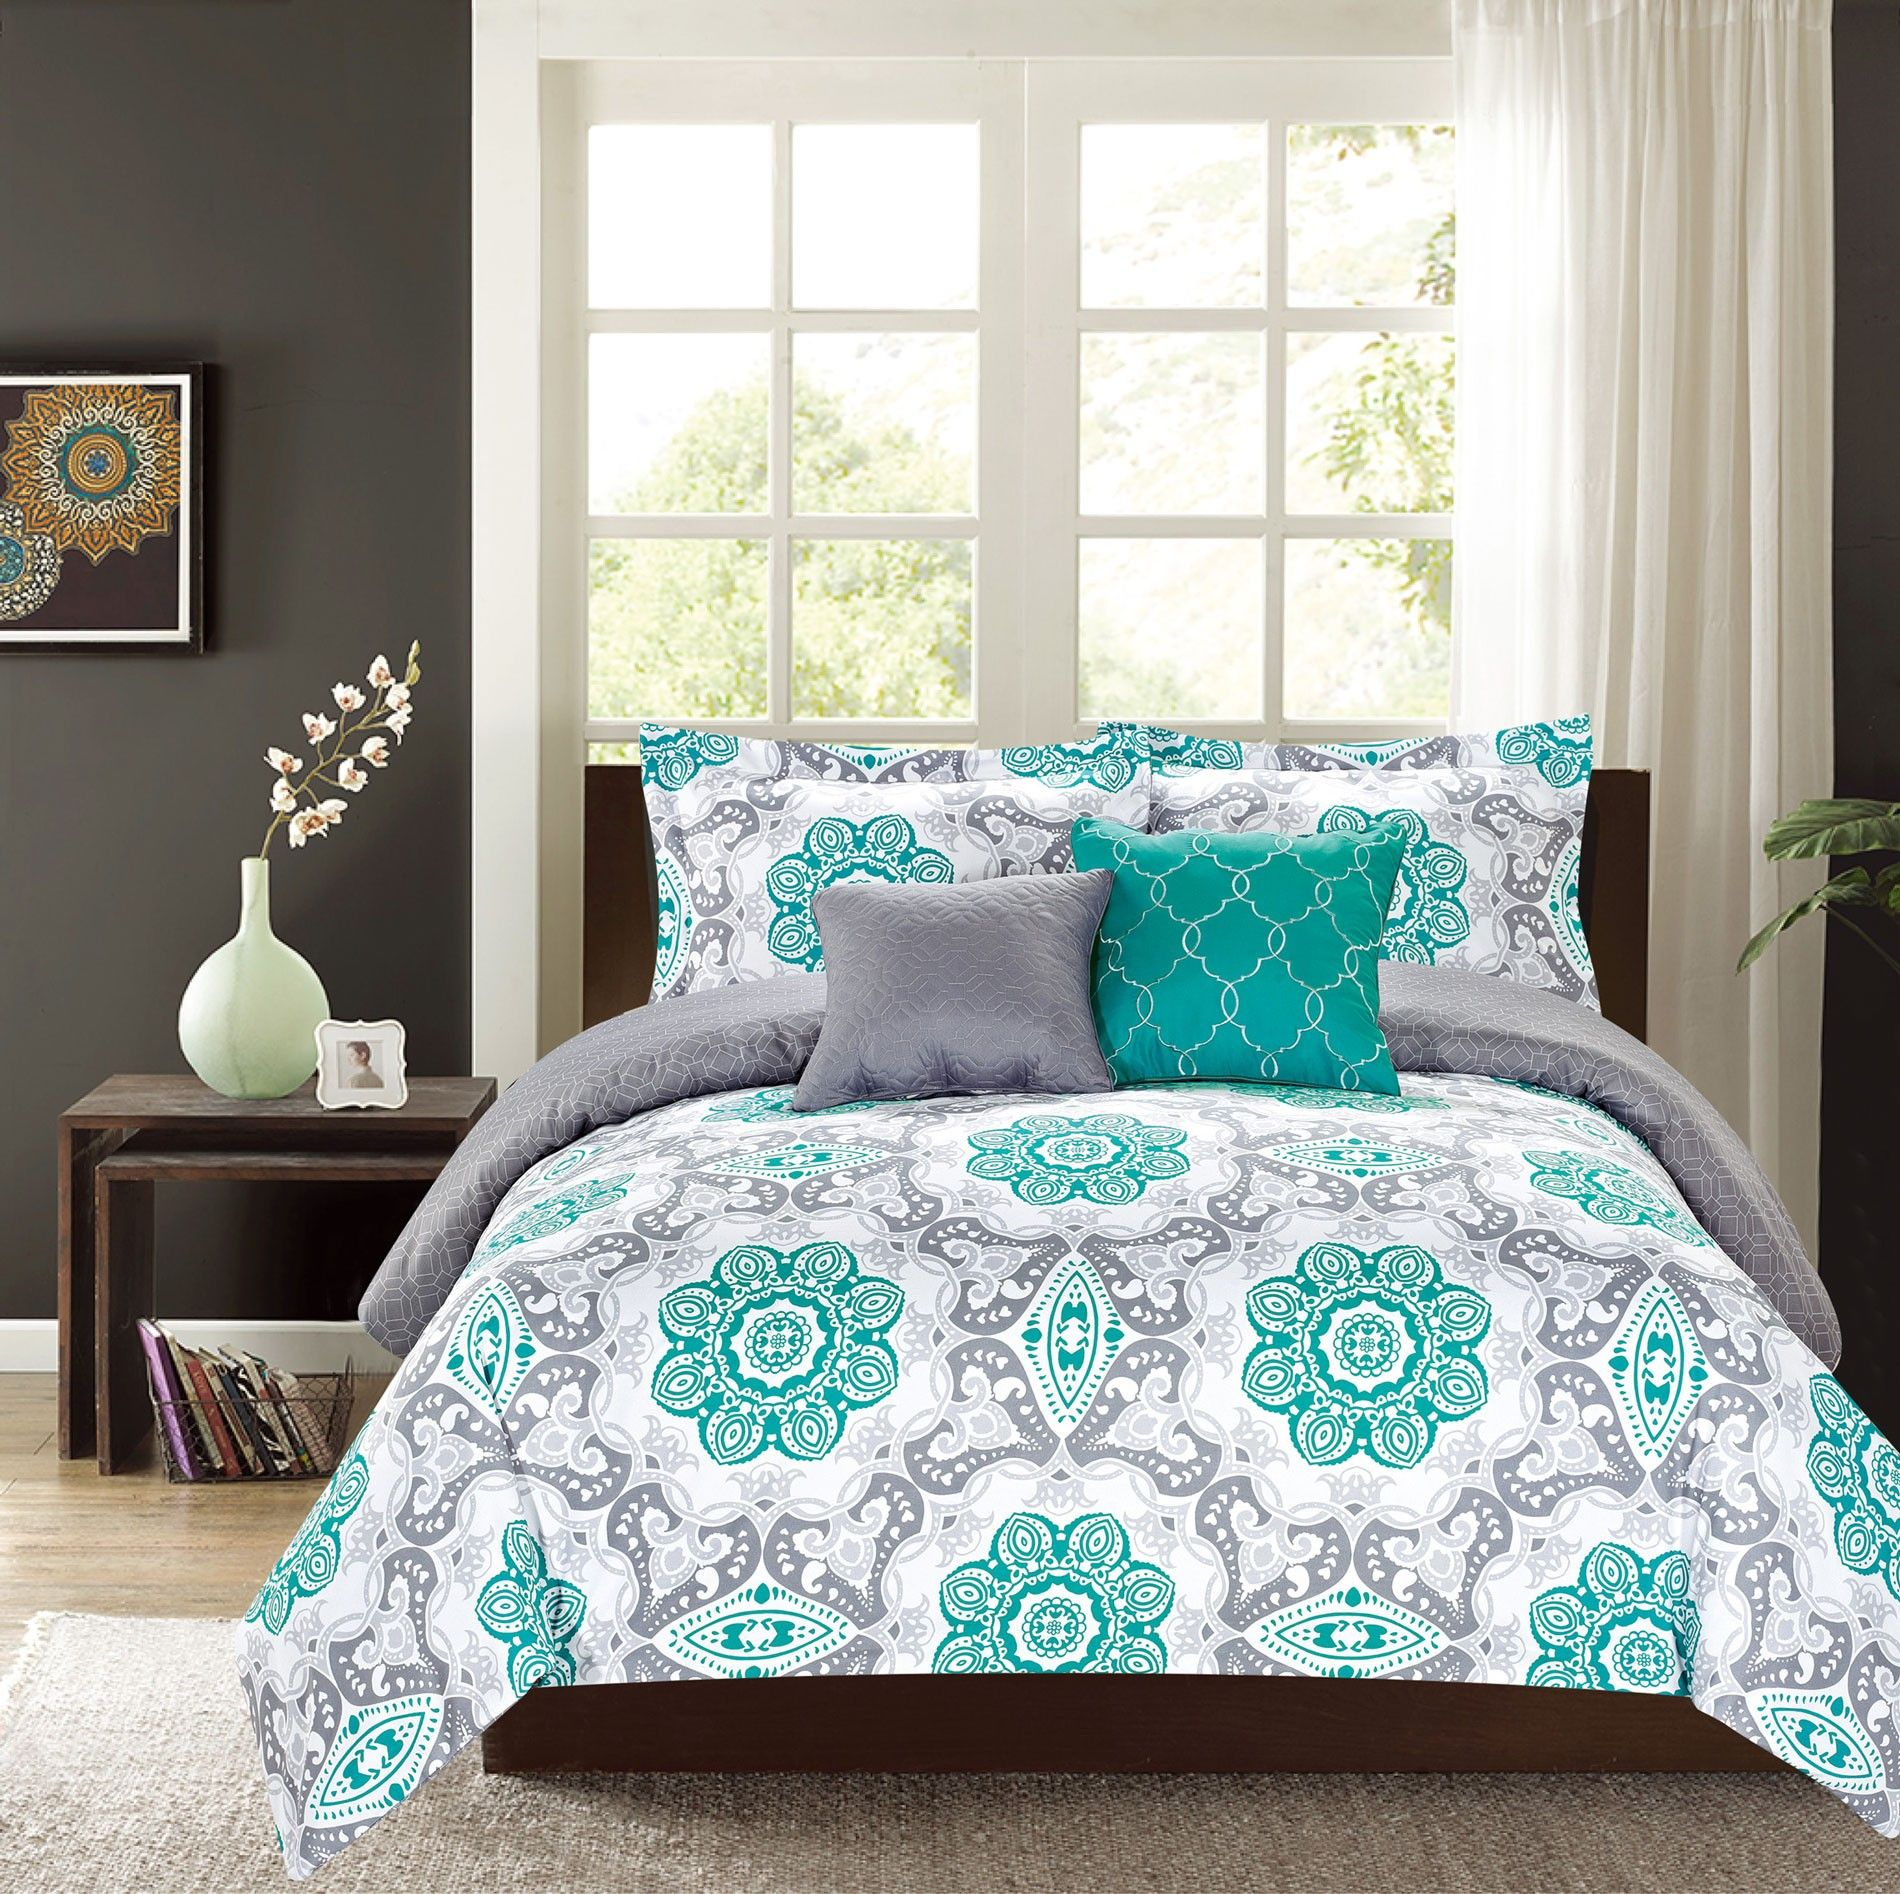 Crest Home Sunrise King forter 5 Pc Bedding Set Teal and Grey